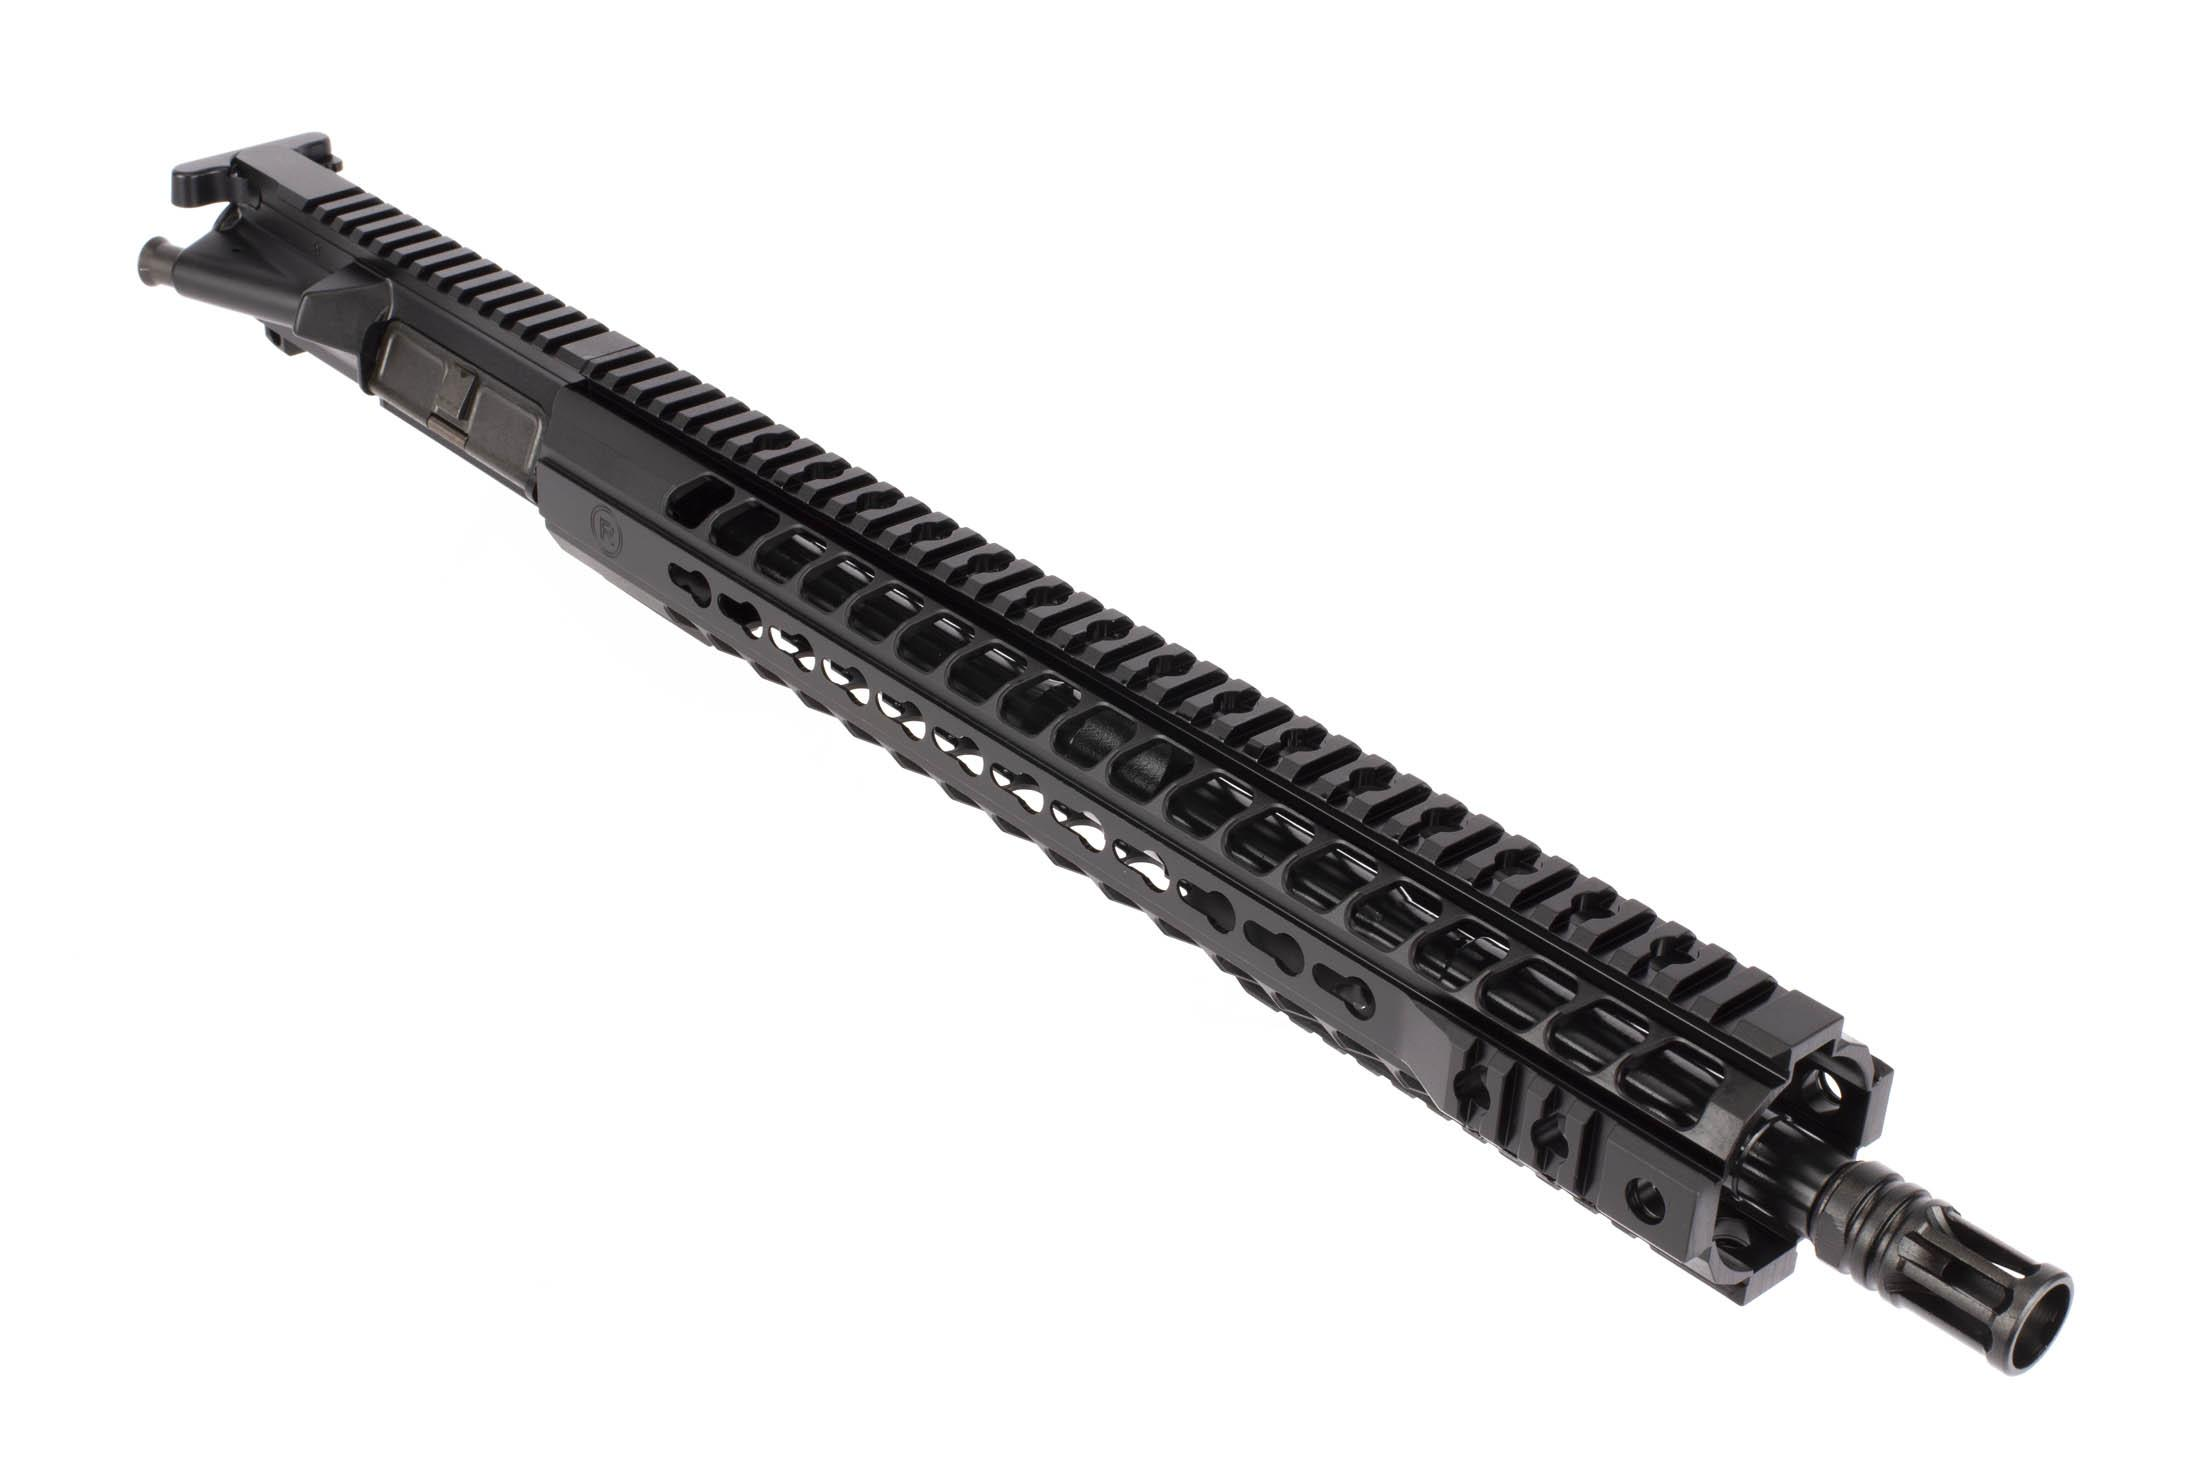 Radical Firearms Complete 16in AR-15 Upper in 5.56 NATO with 1:7 twist and 15in KeyMod FHR Gen 3 Rail.